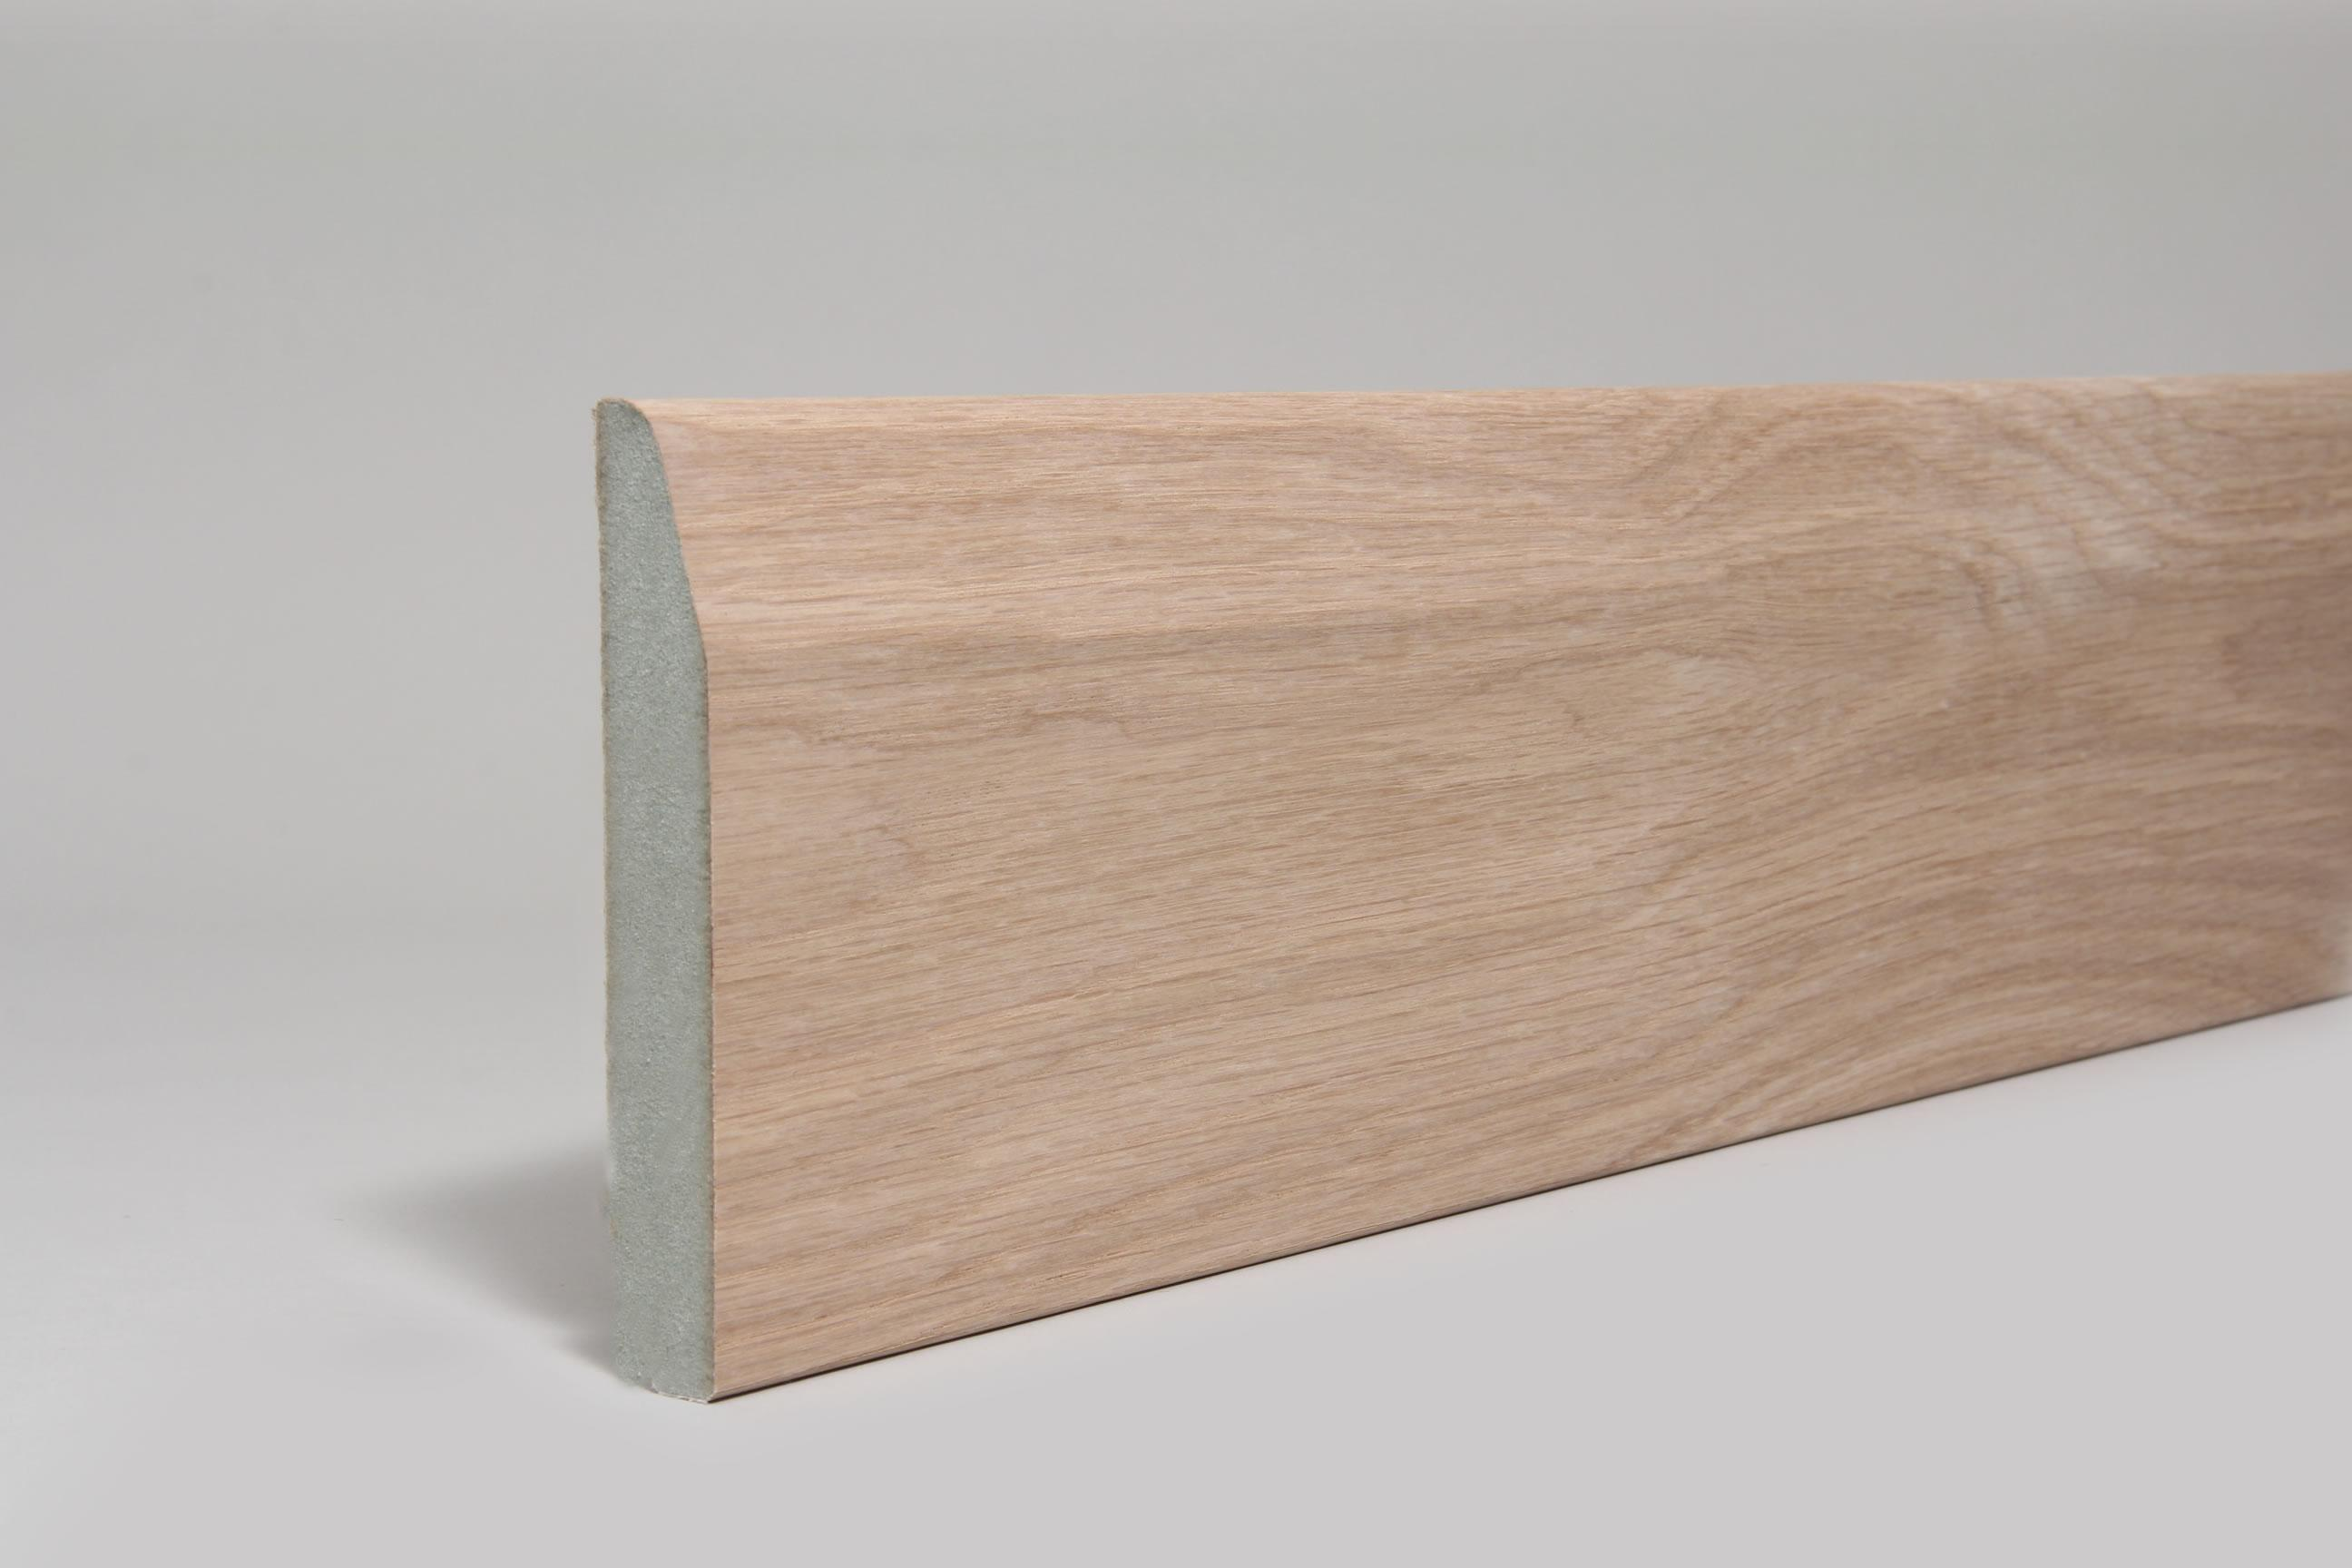 Chamfered & Rounded  18mm x 119mm x 4.4 Mtr Veneered American White Oak